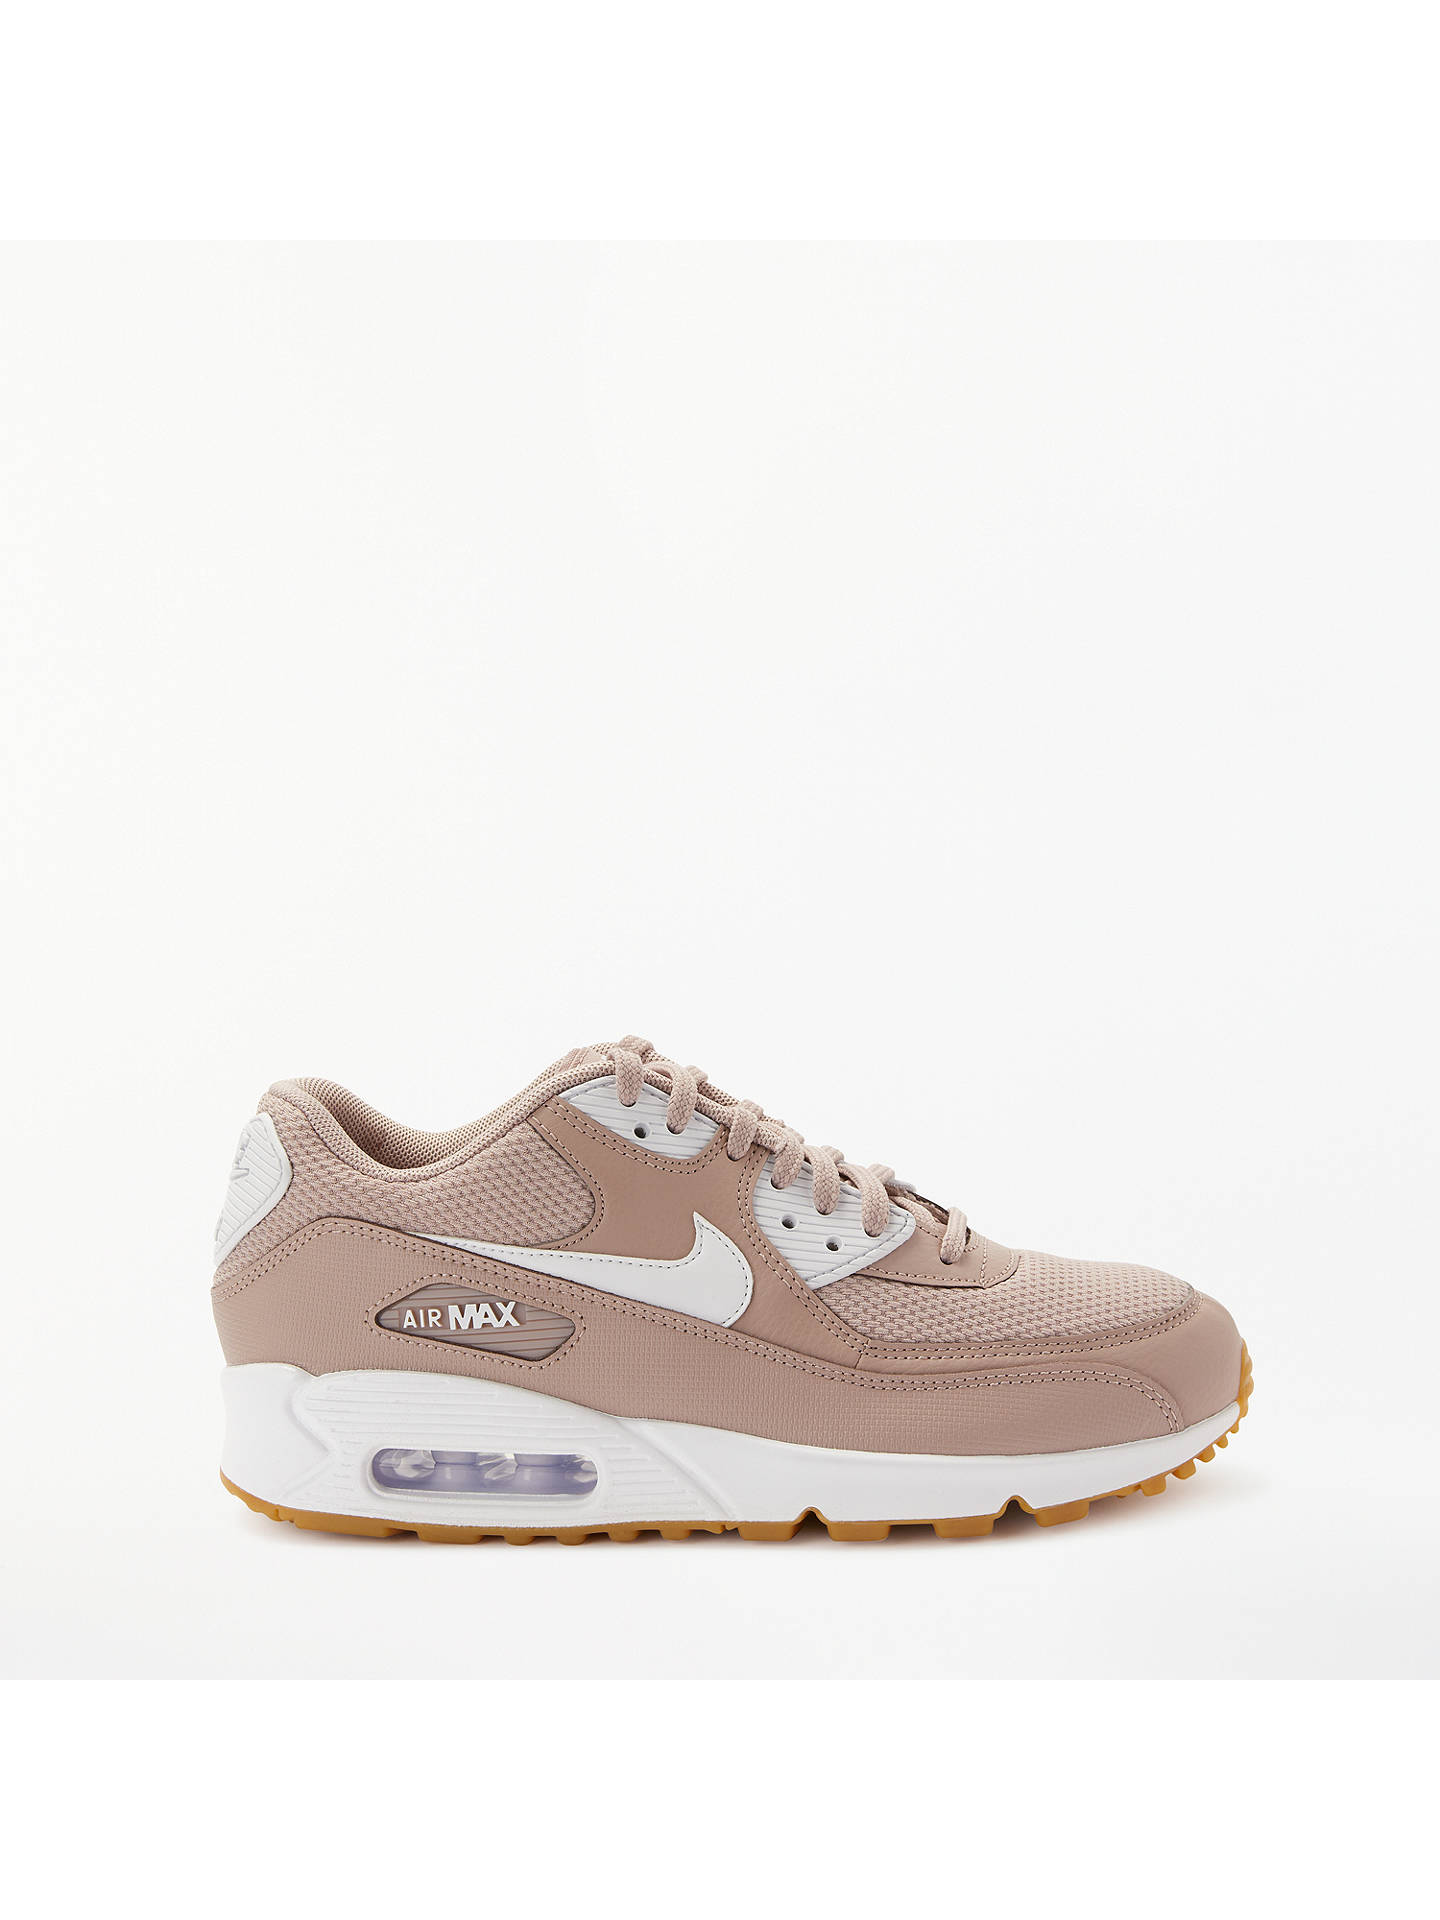 bef378230e8 Nike Air Max 90 Women s Trainers at John Lewis   Partners